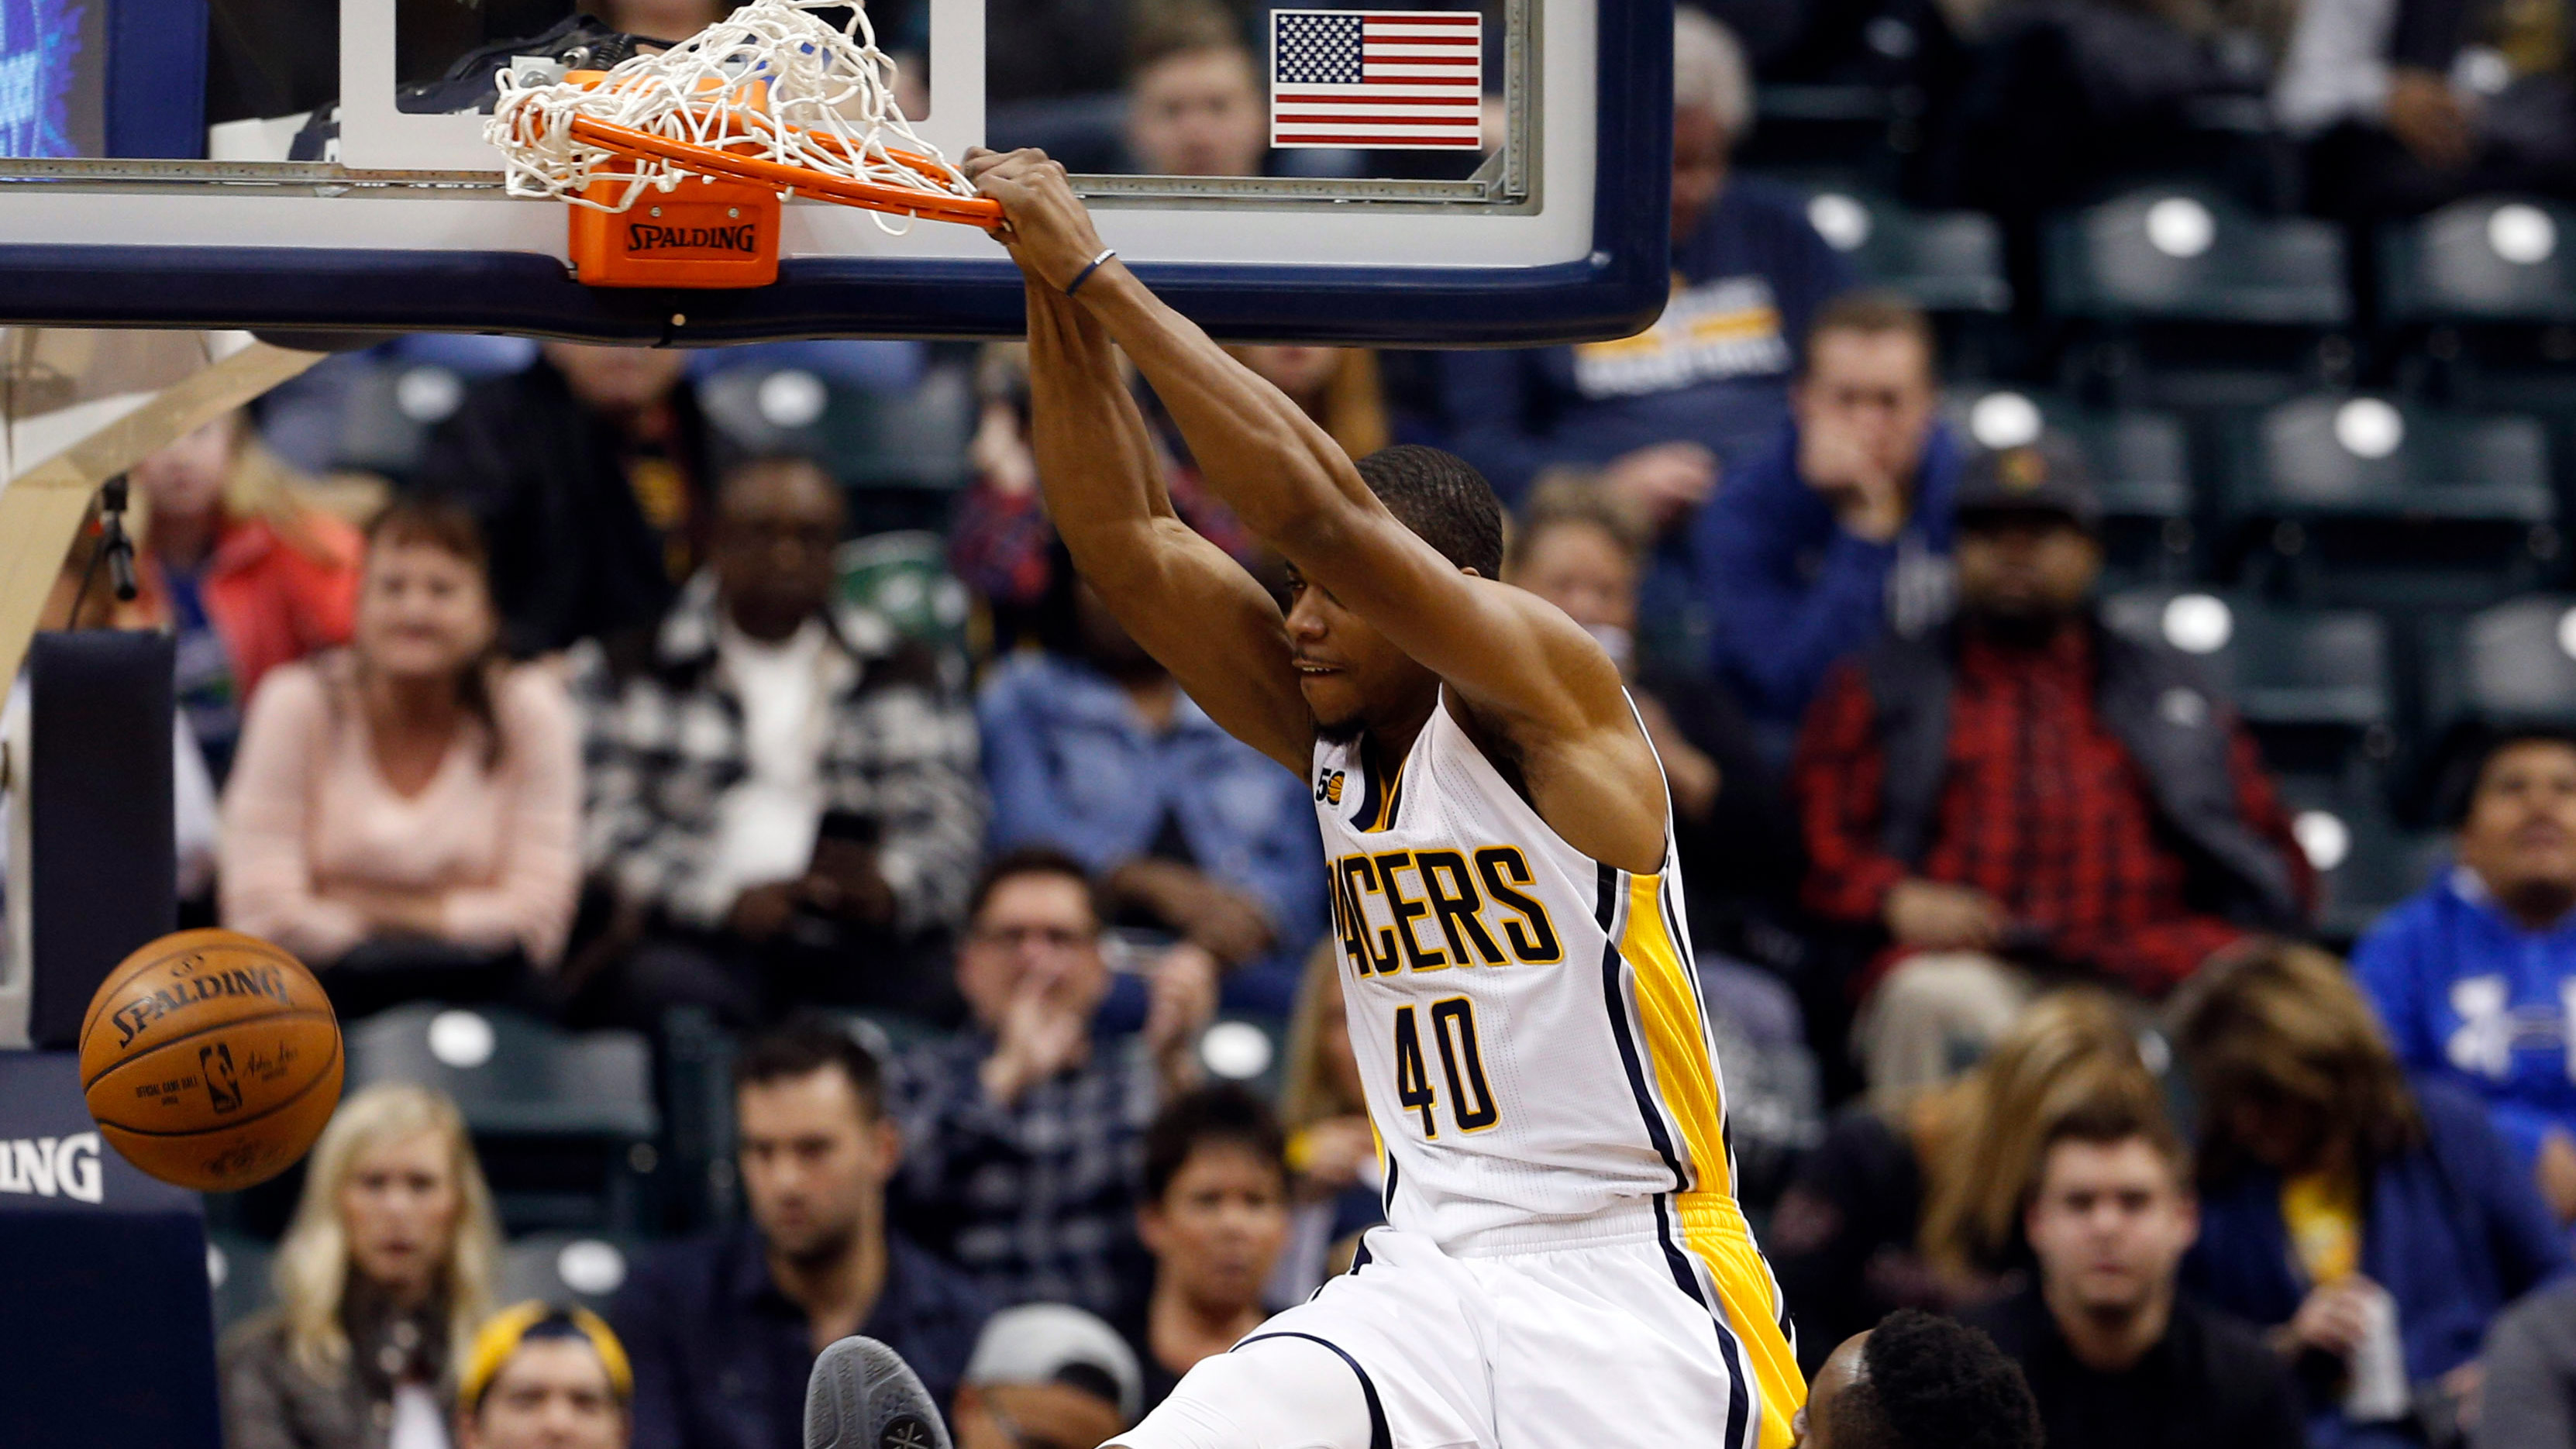 Jan 29, 2017; Indianapolis, IN, USA; Indiana Pacers forward Glenn Robinson III (40) dunks against Houston Rockets guard James Harden (13) at Bankers Life Fieldhouse. Mandatory Credit: Brian Spurlock-USA TODAY Sports